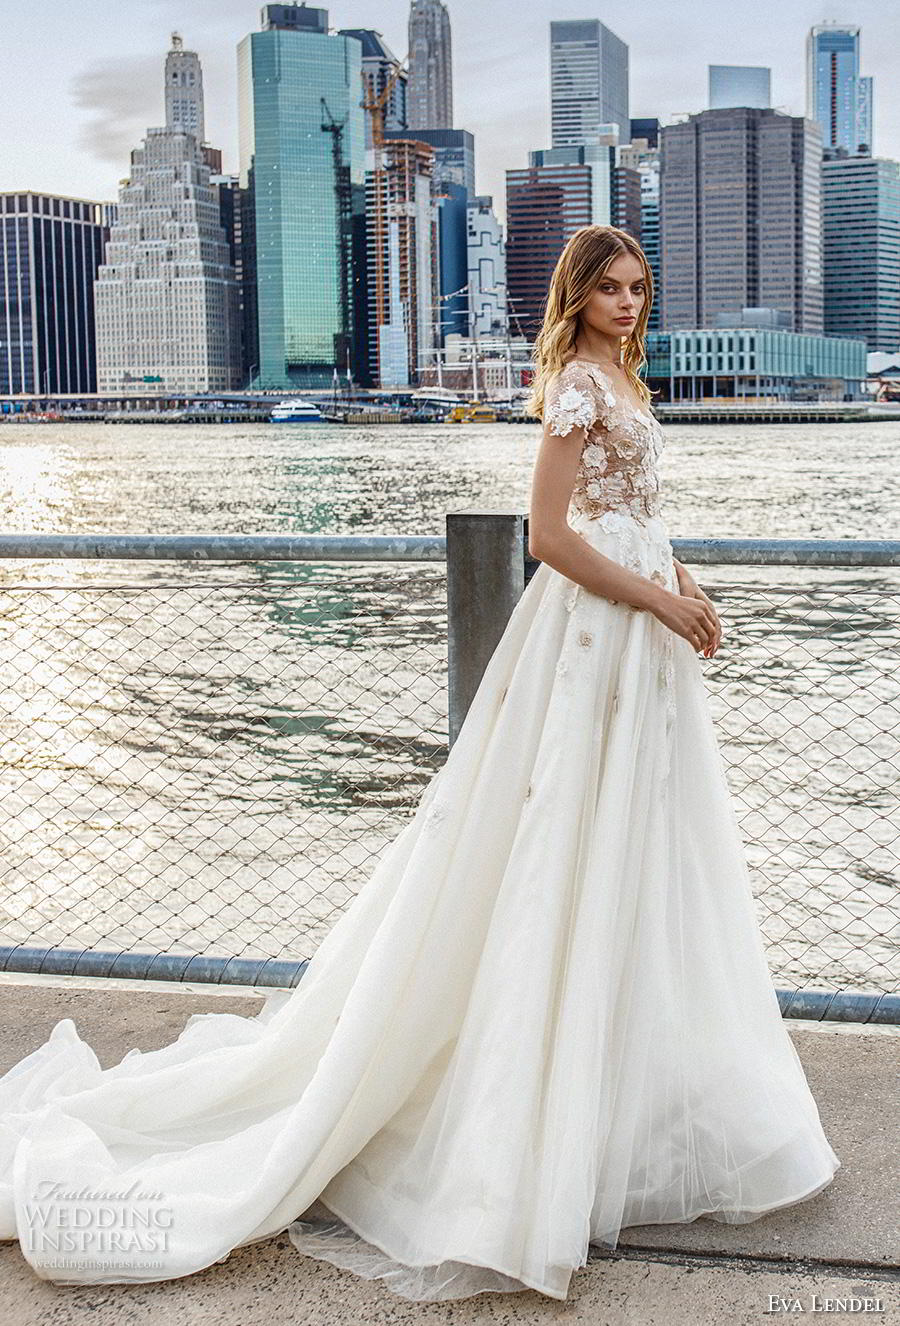 eva lendel 2019 bridal short sleeves heavily embellished bodice romantic a  line wedding dress backless scoop back chapel train (3) mv